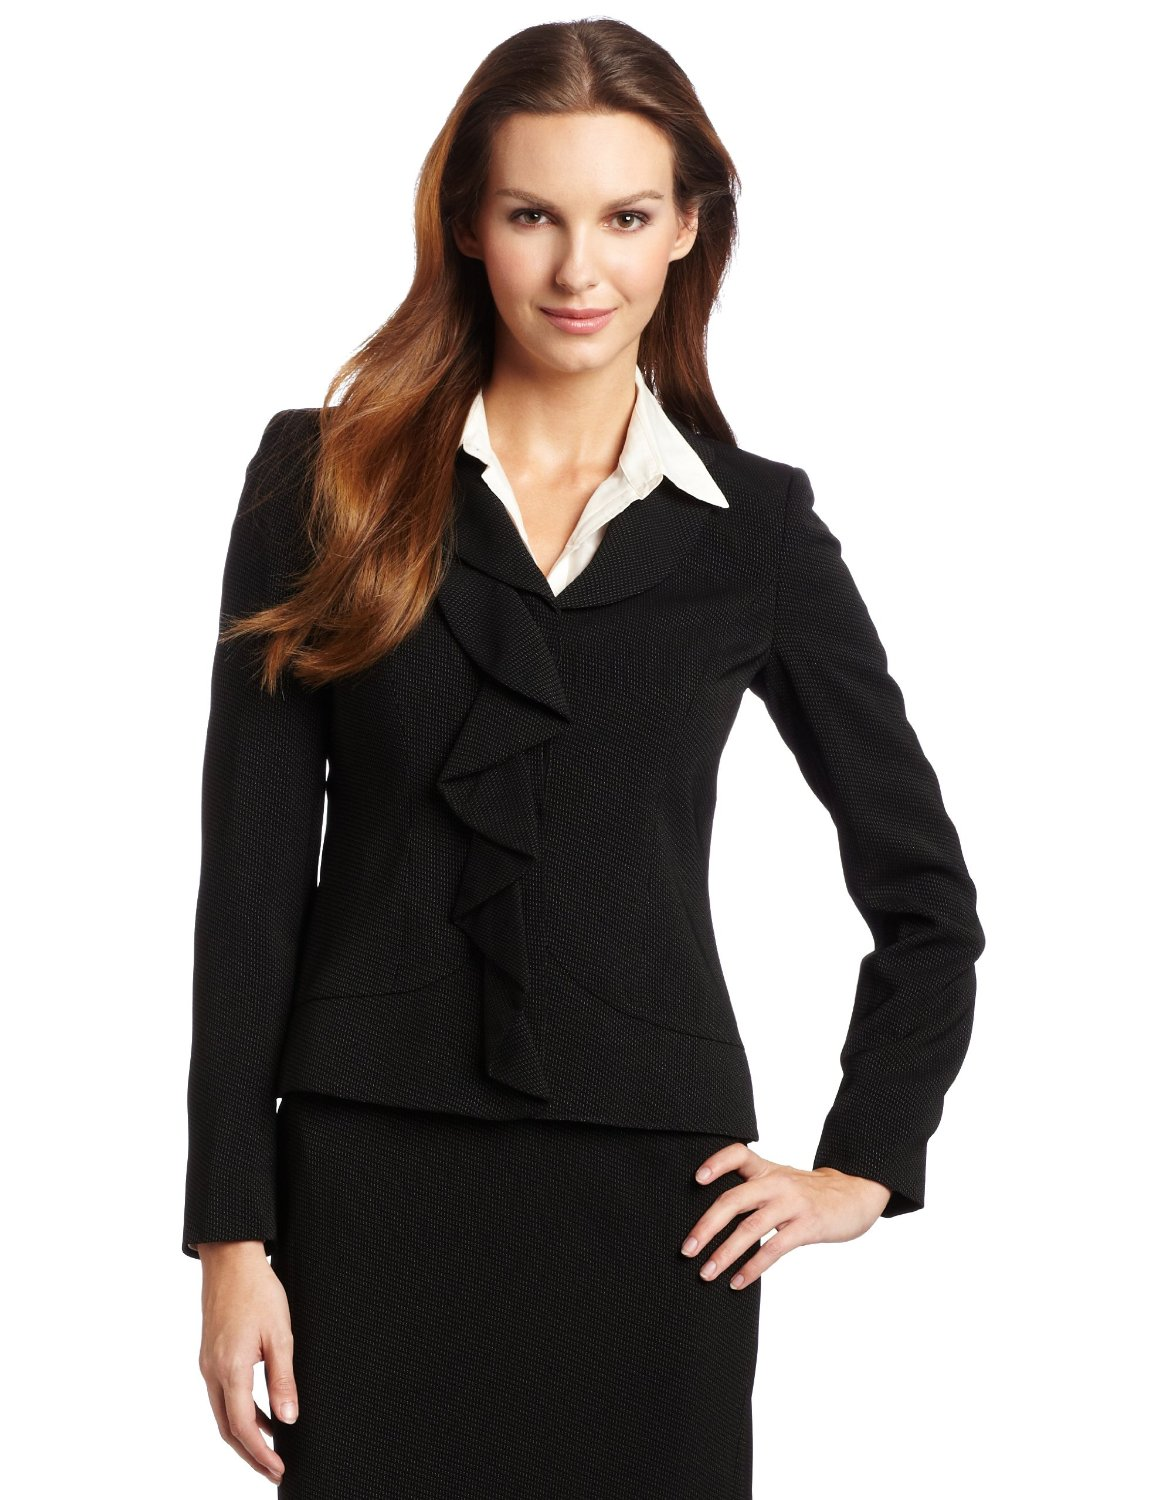 business casual dress for women women dresses